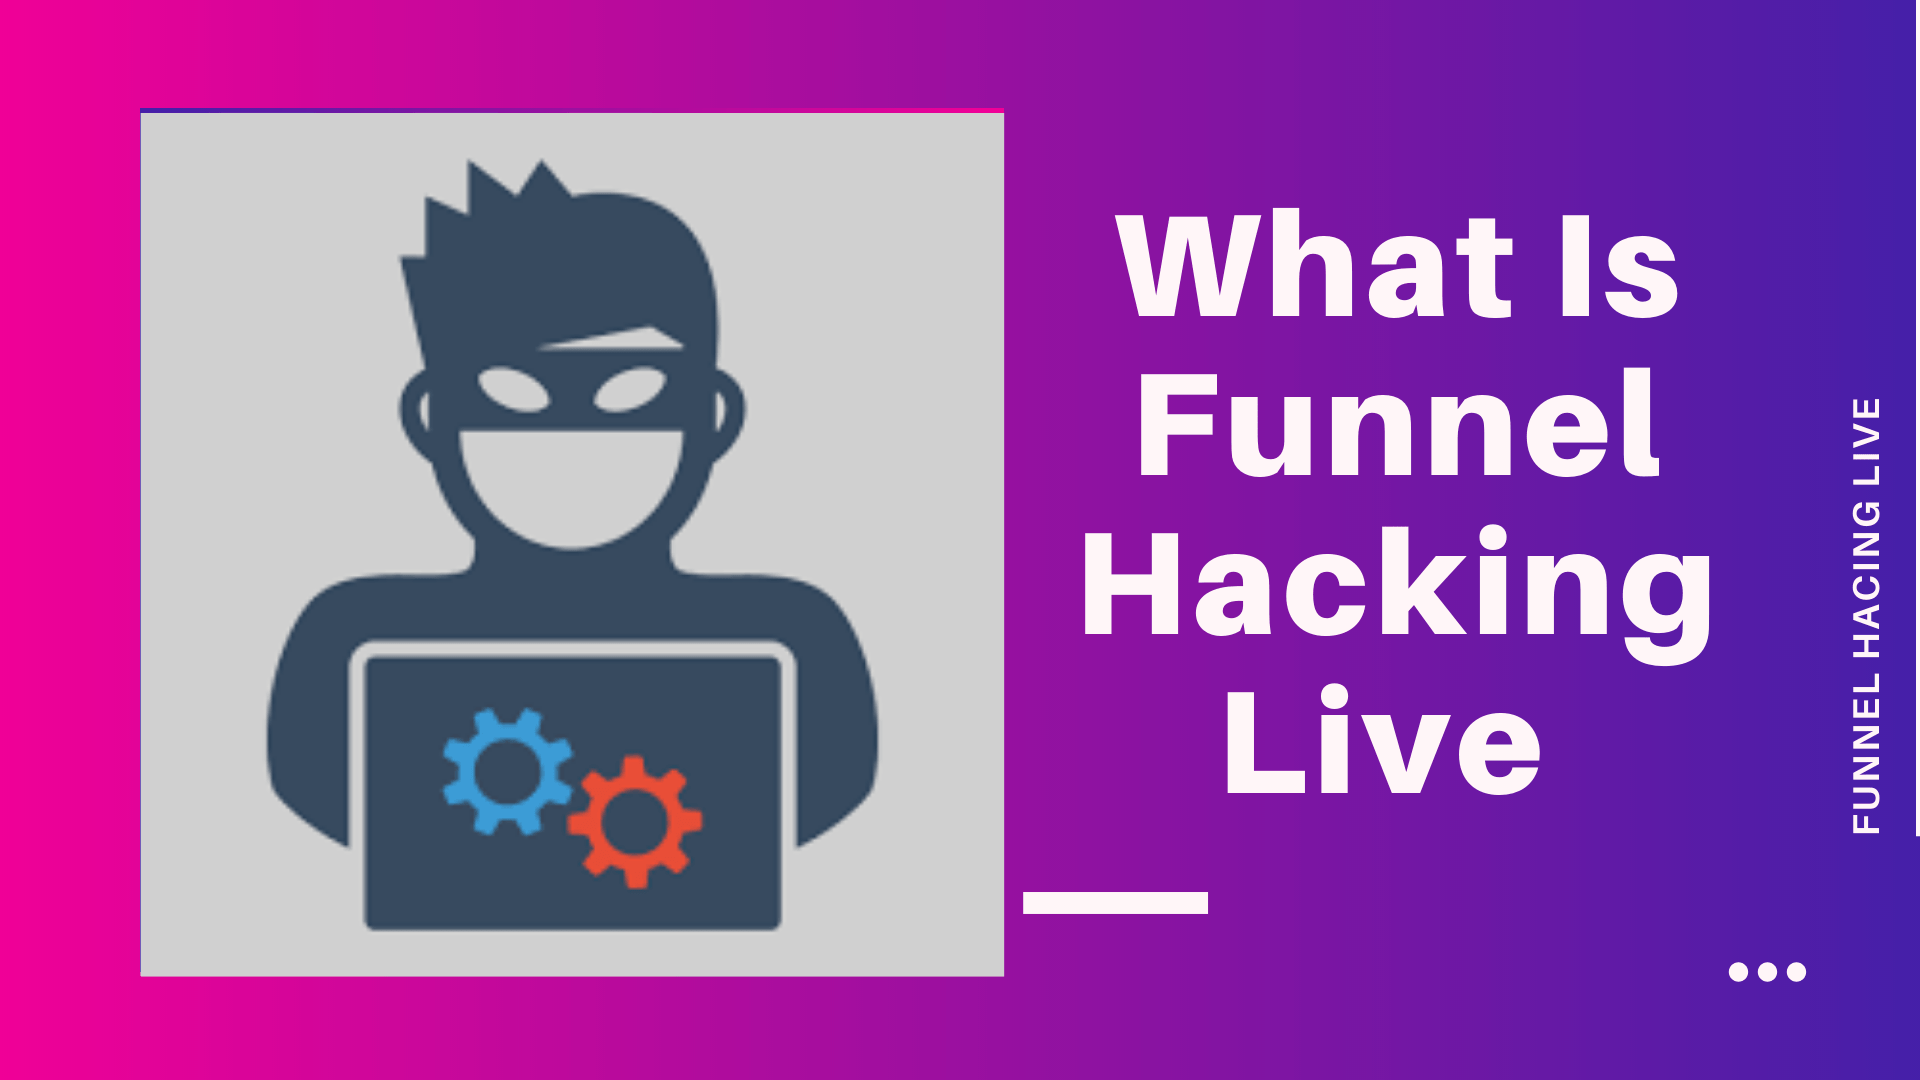 Funnel Hacking Live 2020 Cost, Date, Speaker & More